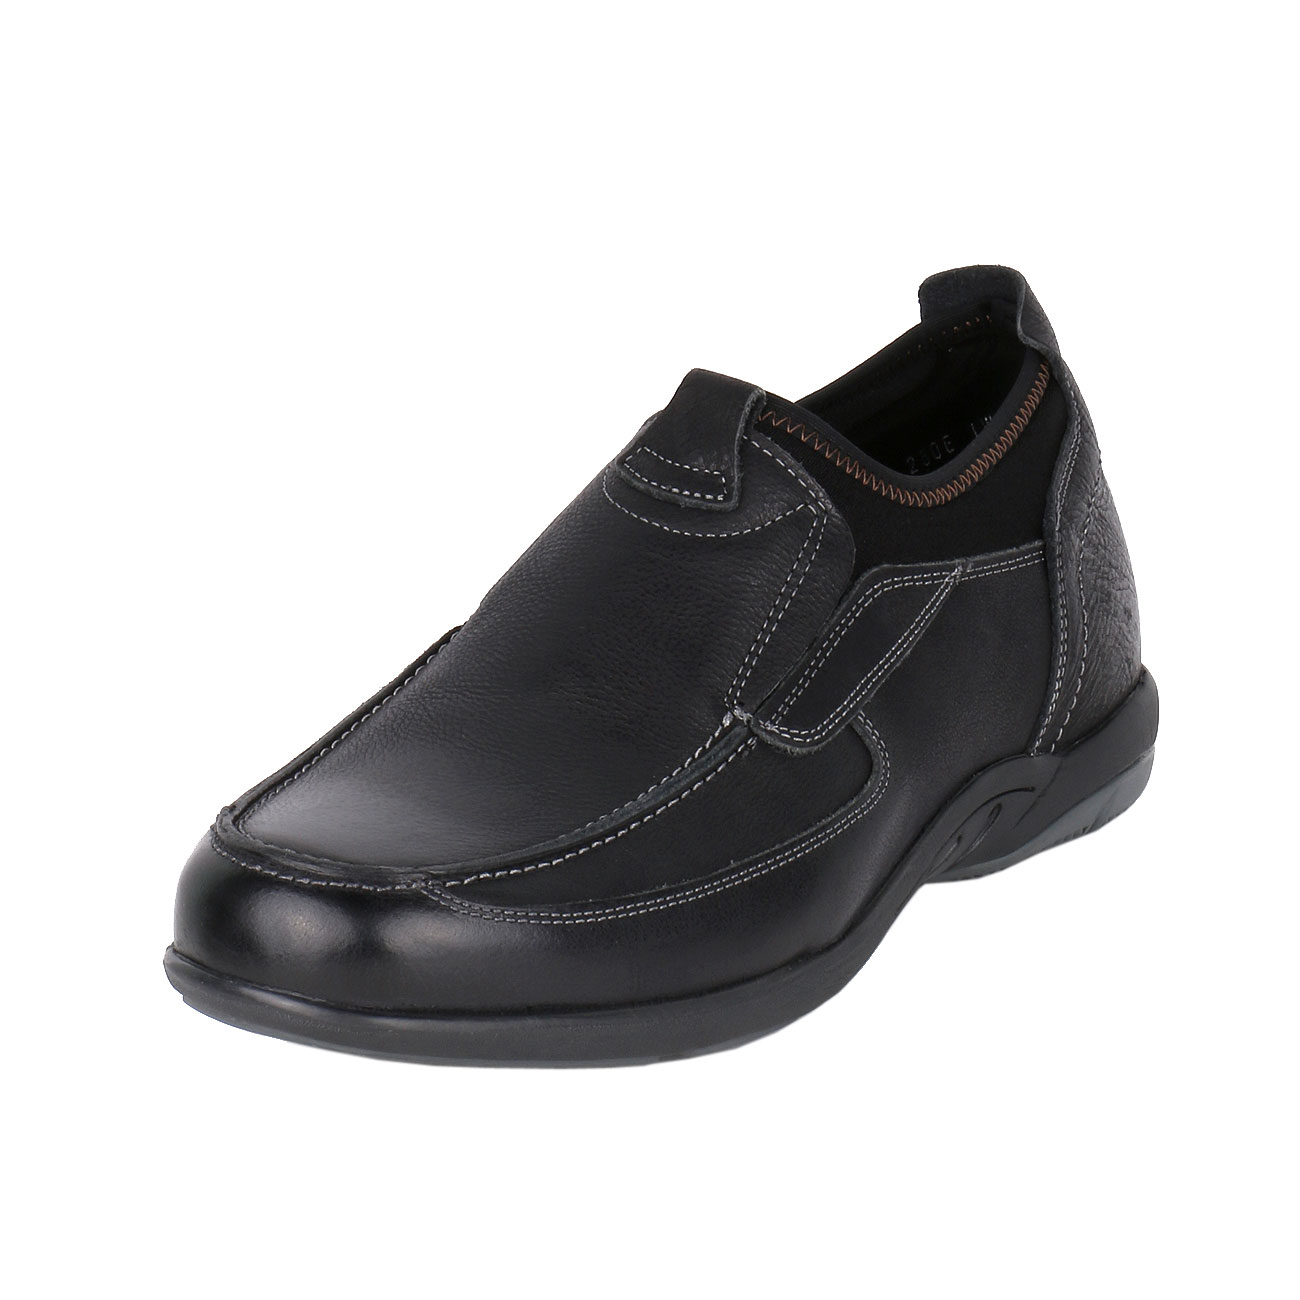 Fashion Slip on Shoe Comfort & Versatility Height Elevation 2